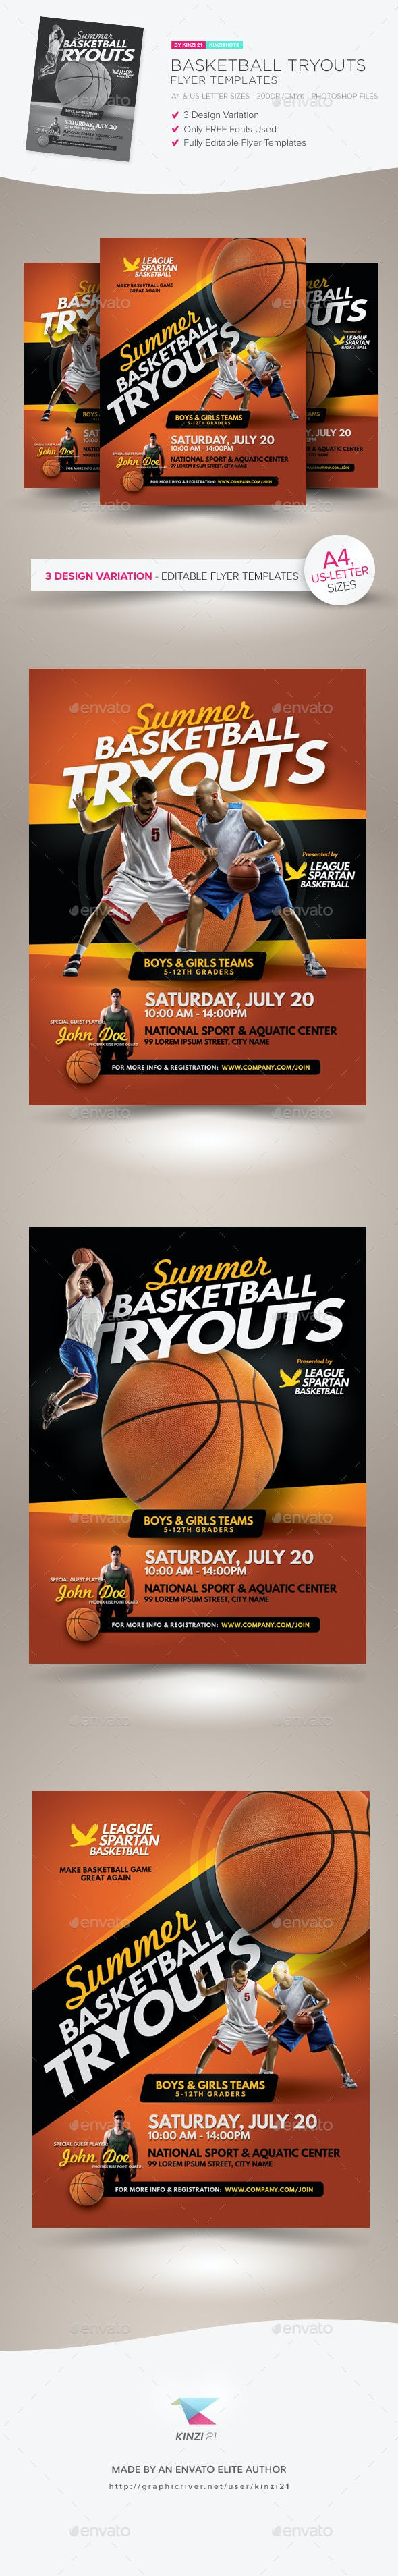 basketball tryouts flyer templates by kinzishots graphicriver